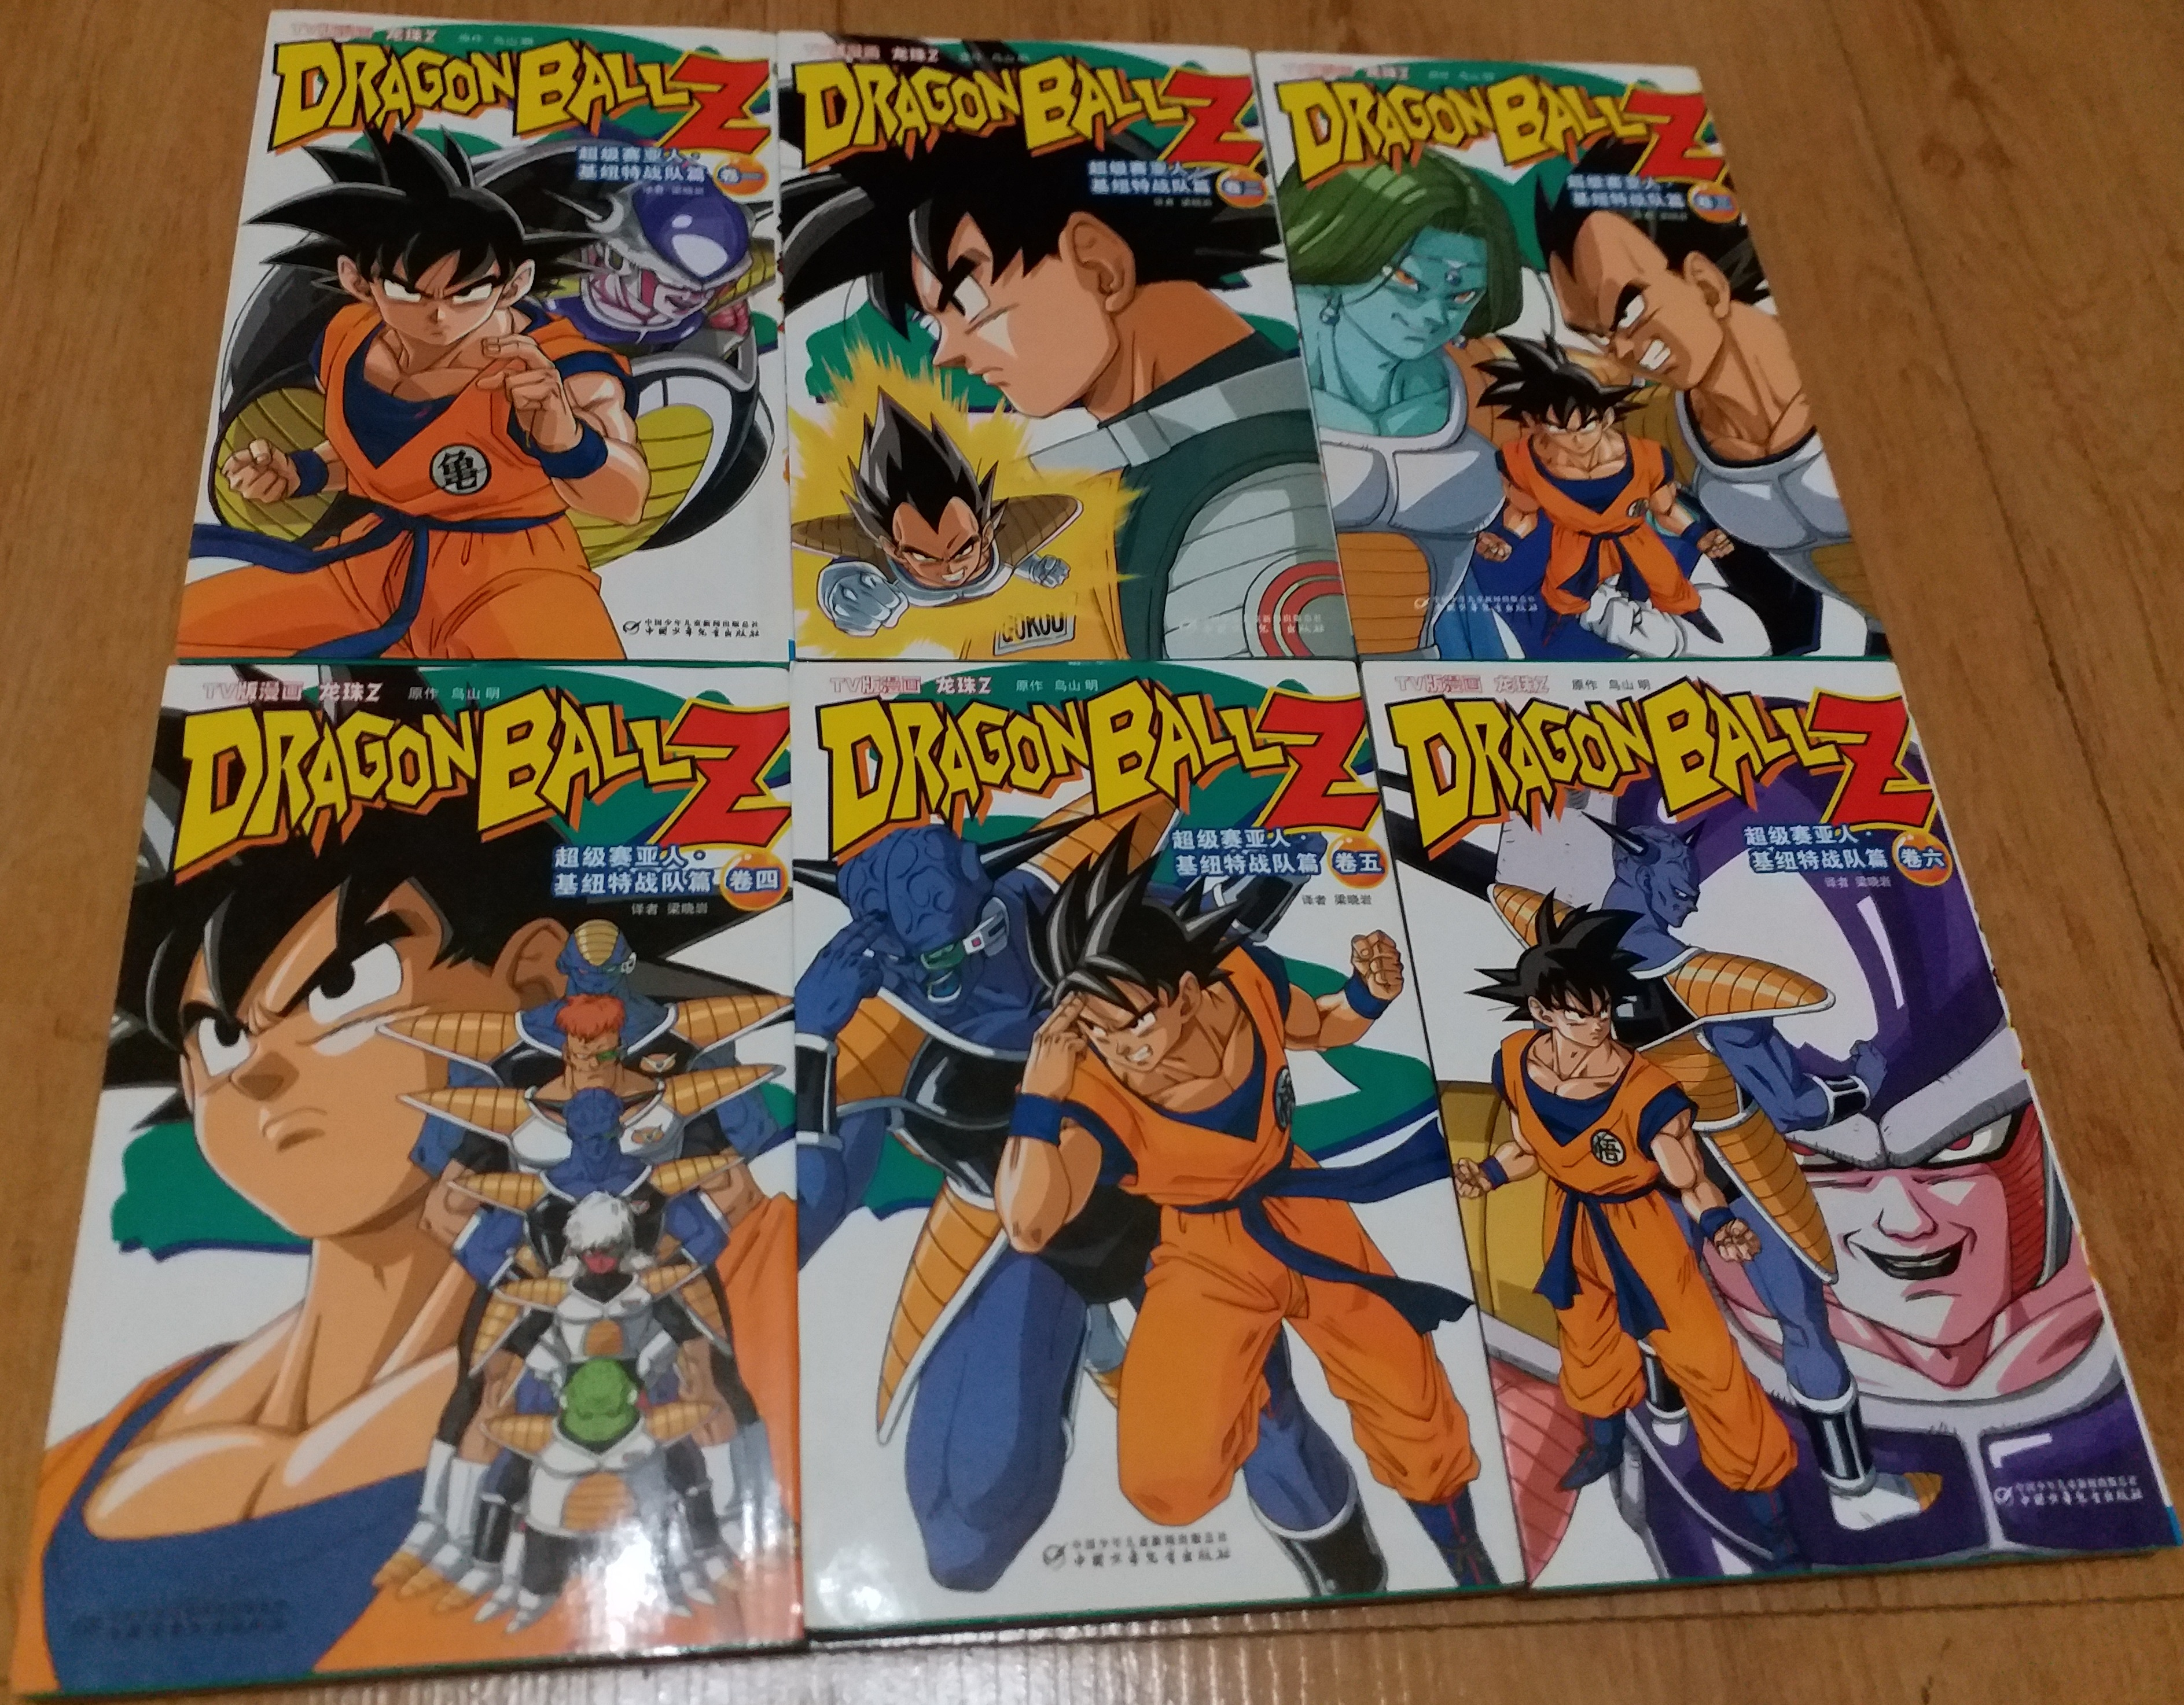 Dragon Ball Z Saiya 1 6 Comic Complete Set Full Color Manga Book Japanese Akira Toriyama Cartoon Comic Book Language Chinese Literature Fiction Aliexpress